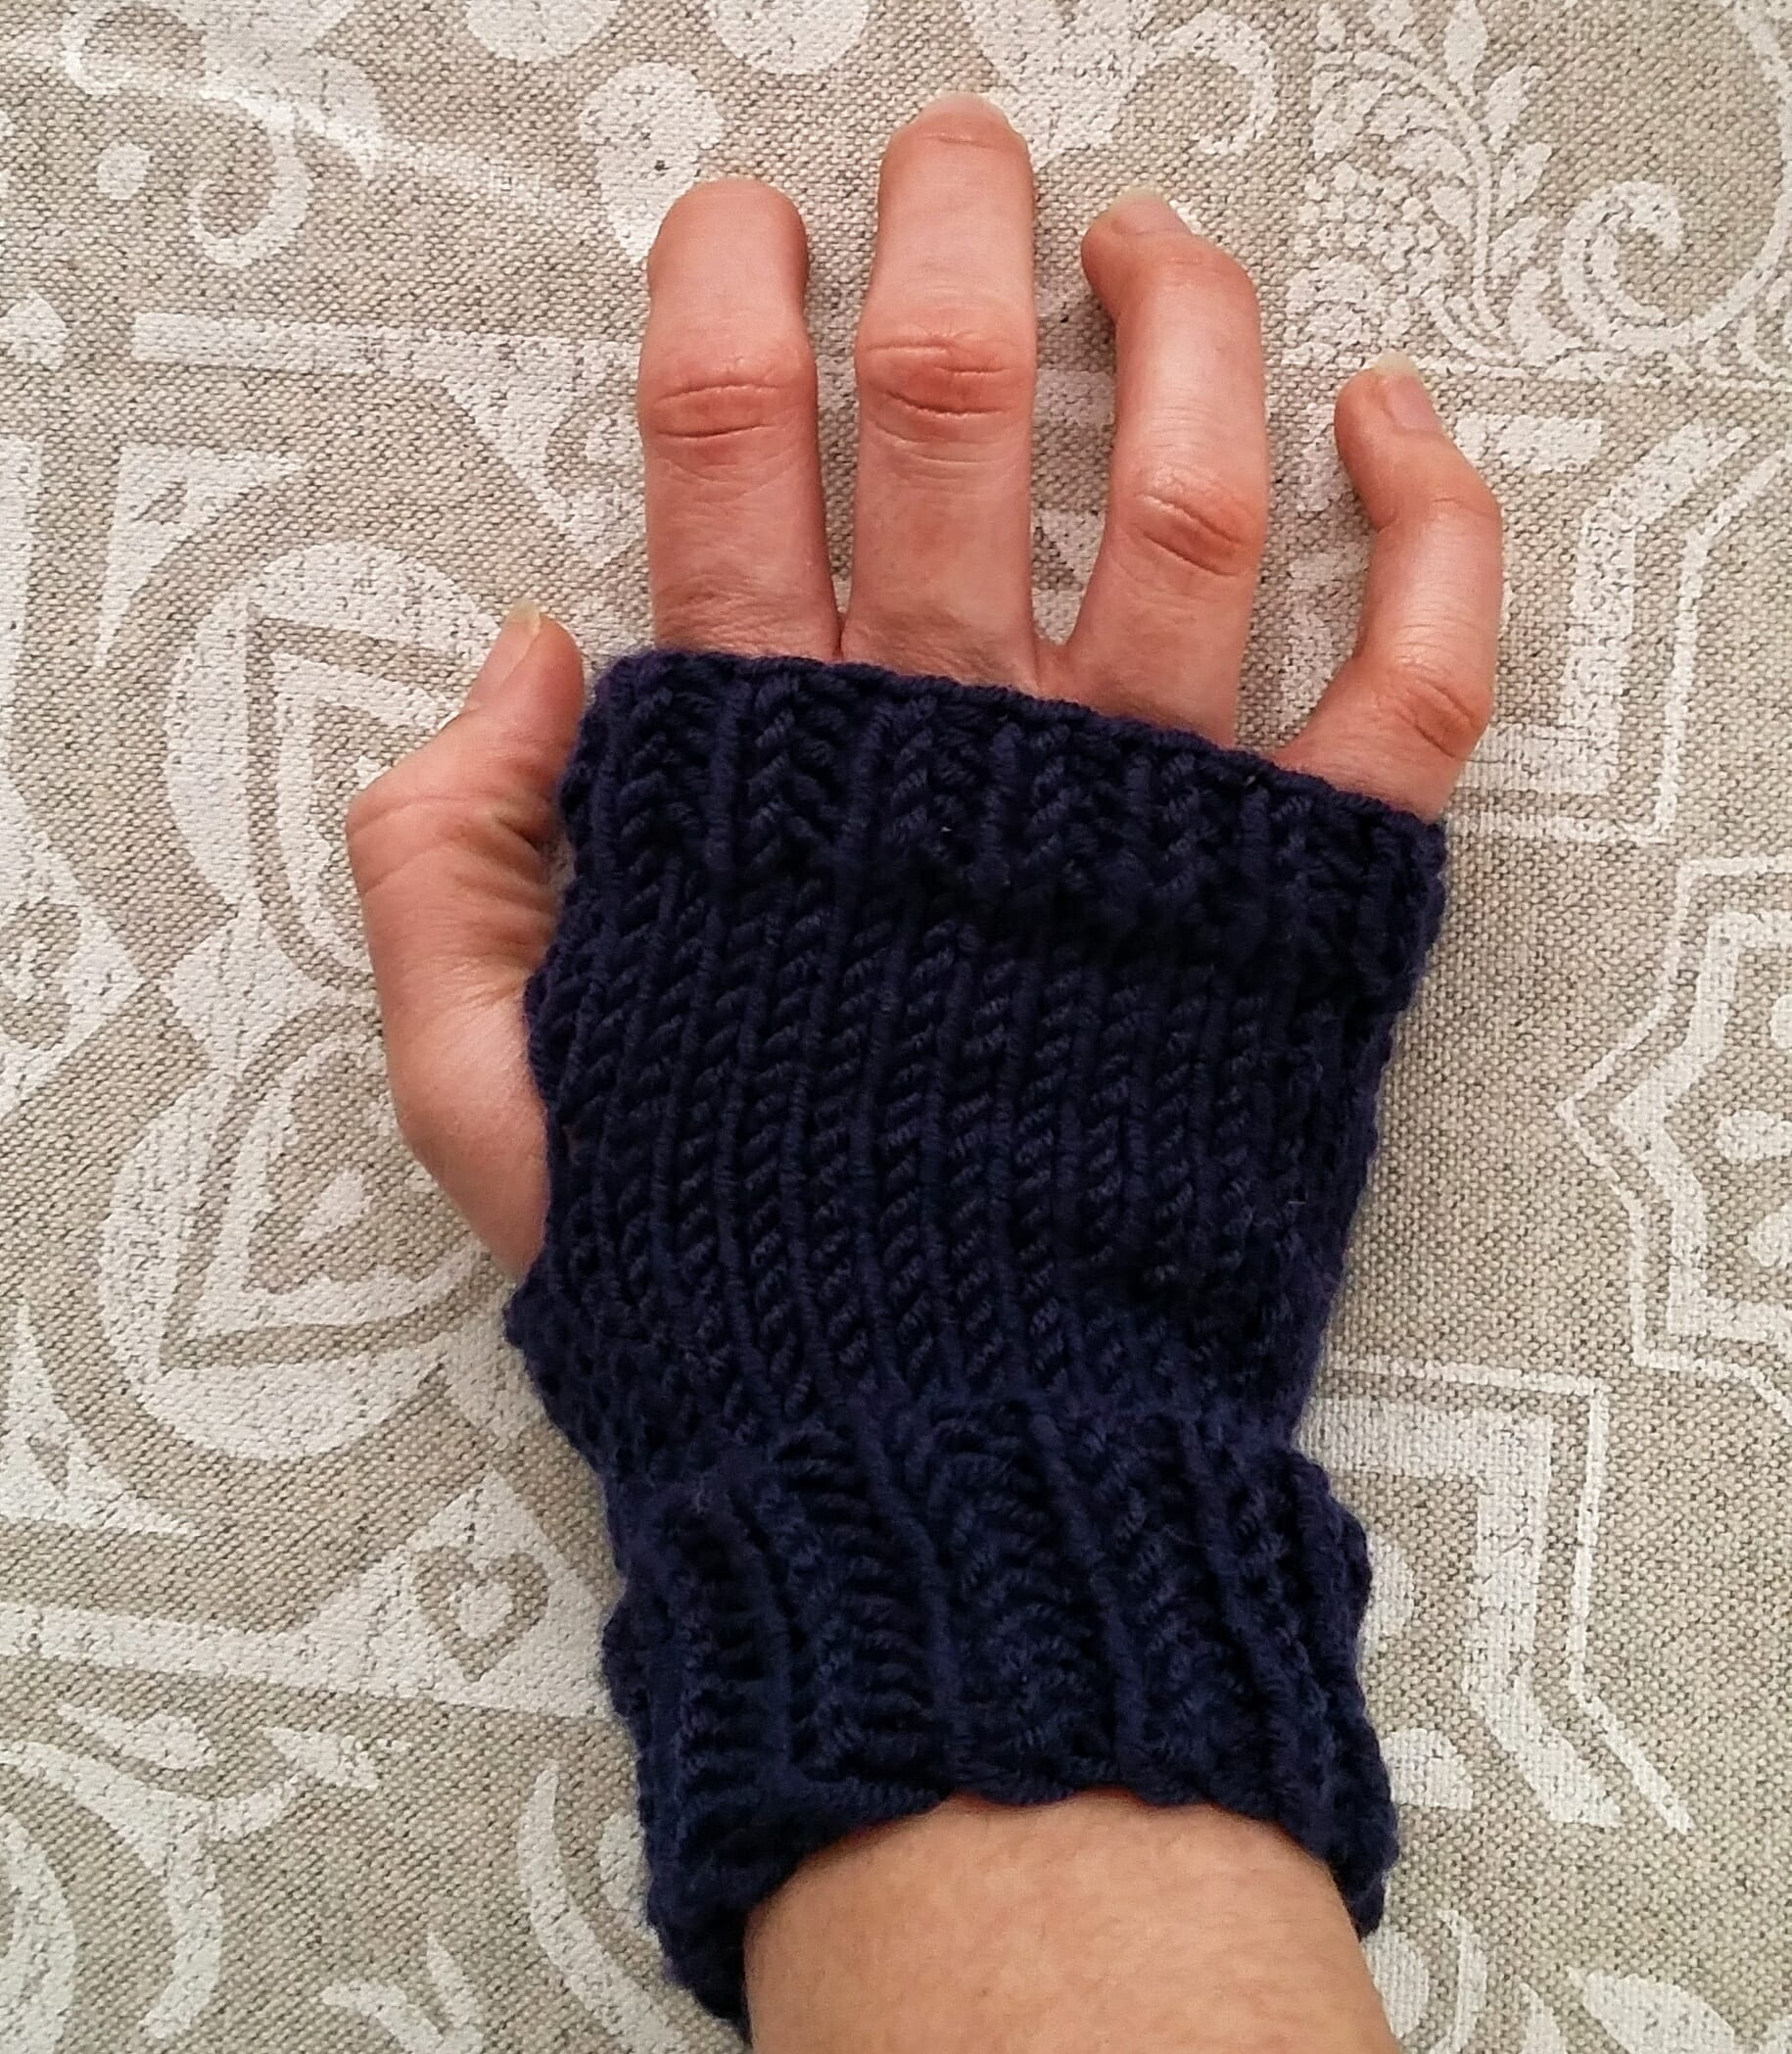 Knitted fingerless gloves/mitts - FromAnnA\'sHands